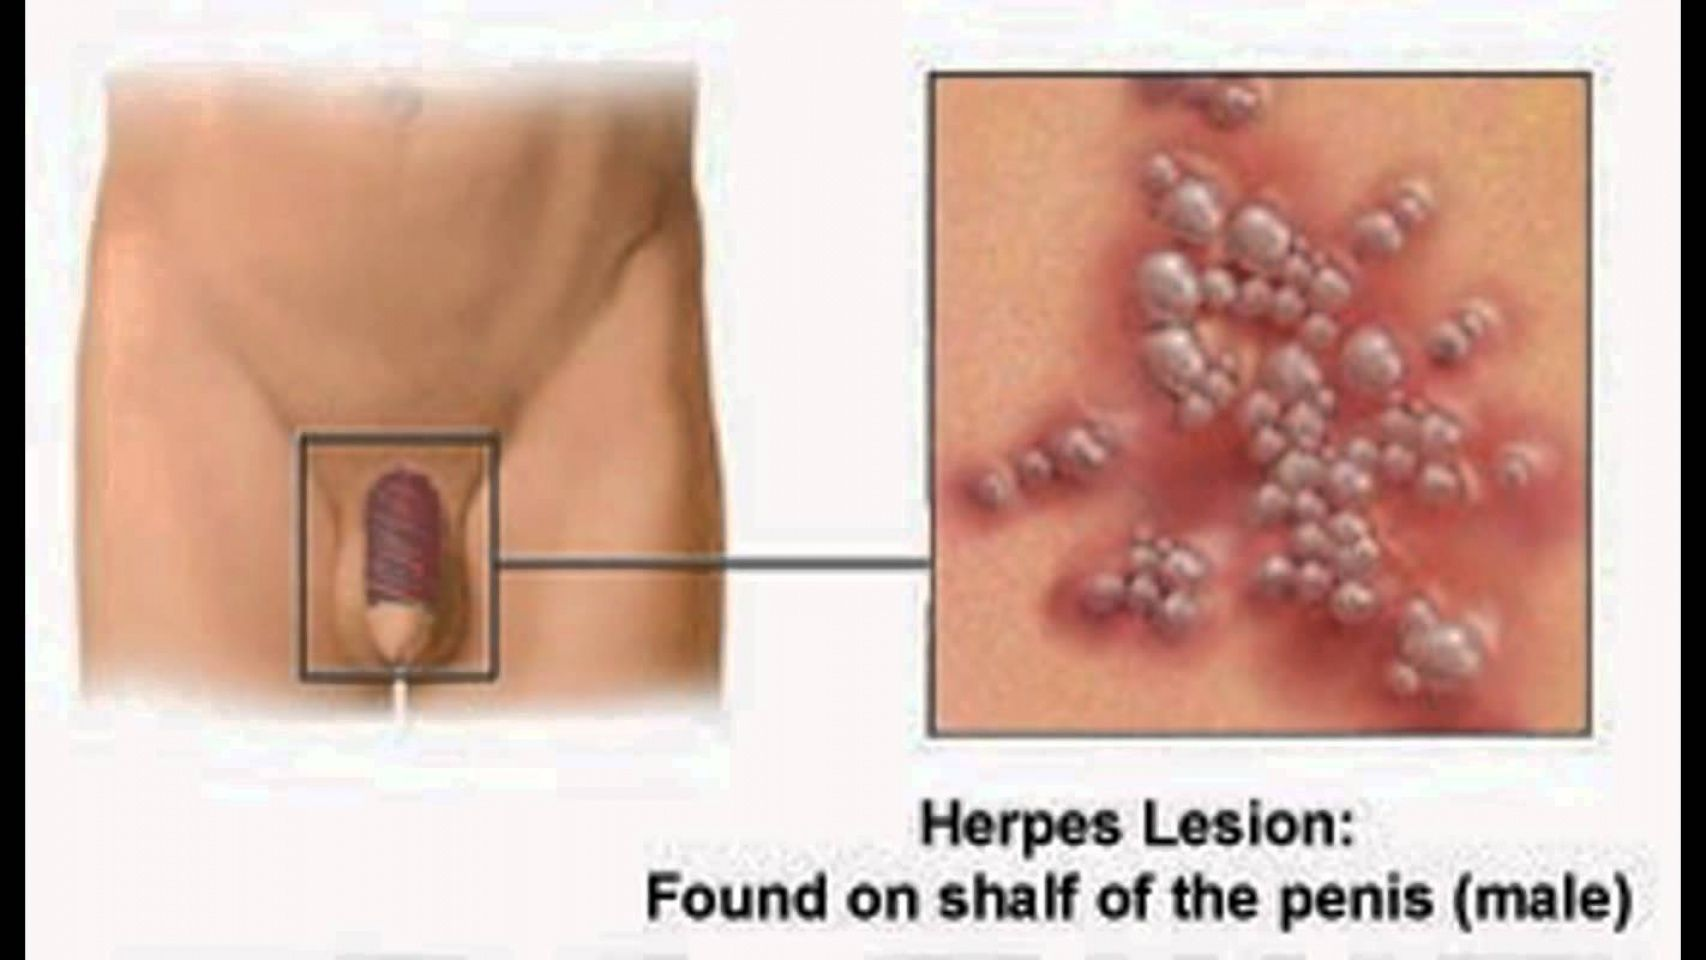 Herpes Sores On The Penis - Blisters Or Sores On Penis -4945